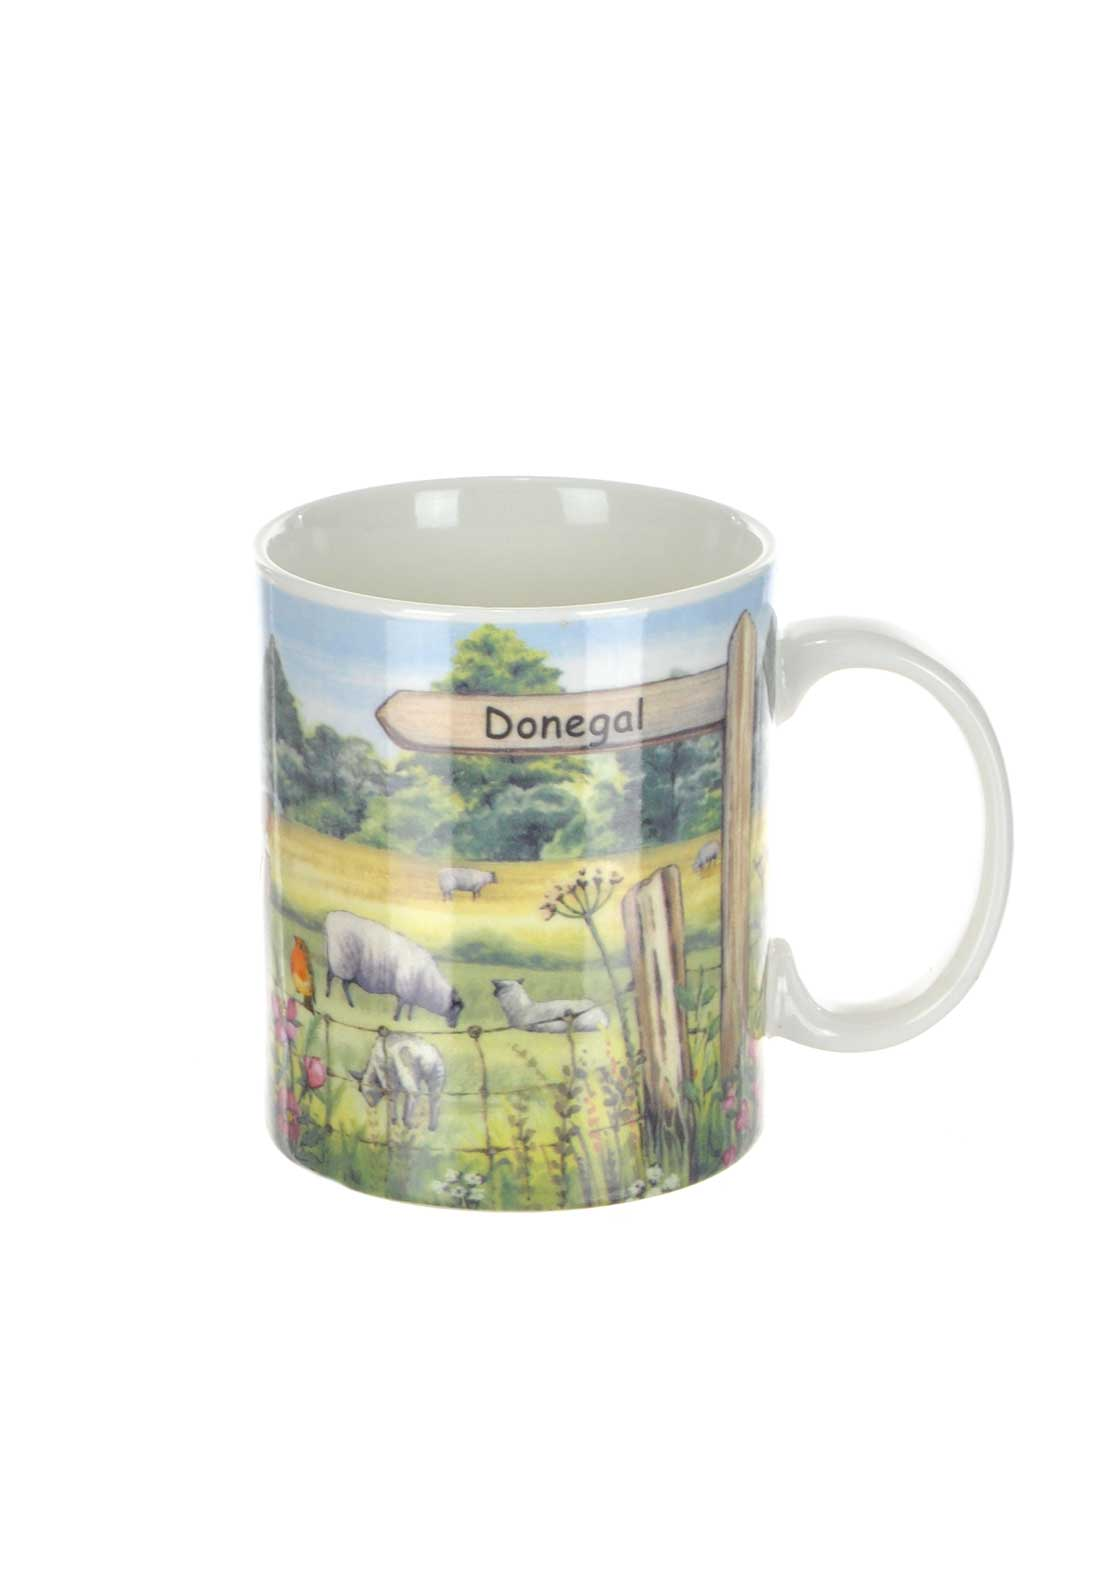 Shannonbridge Ireland Signpost Mug, Multi